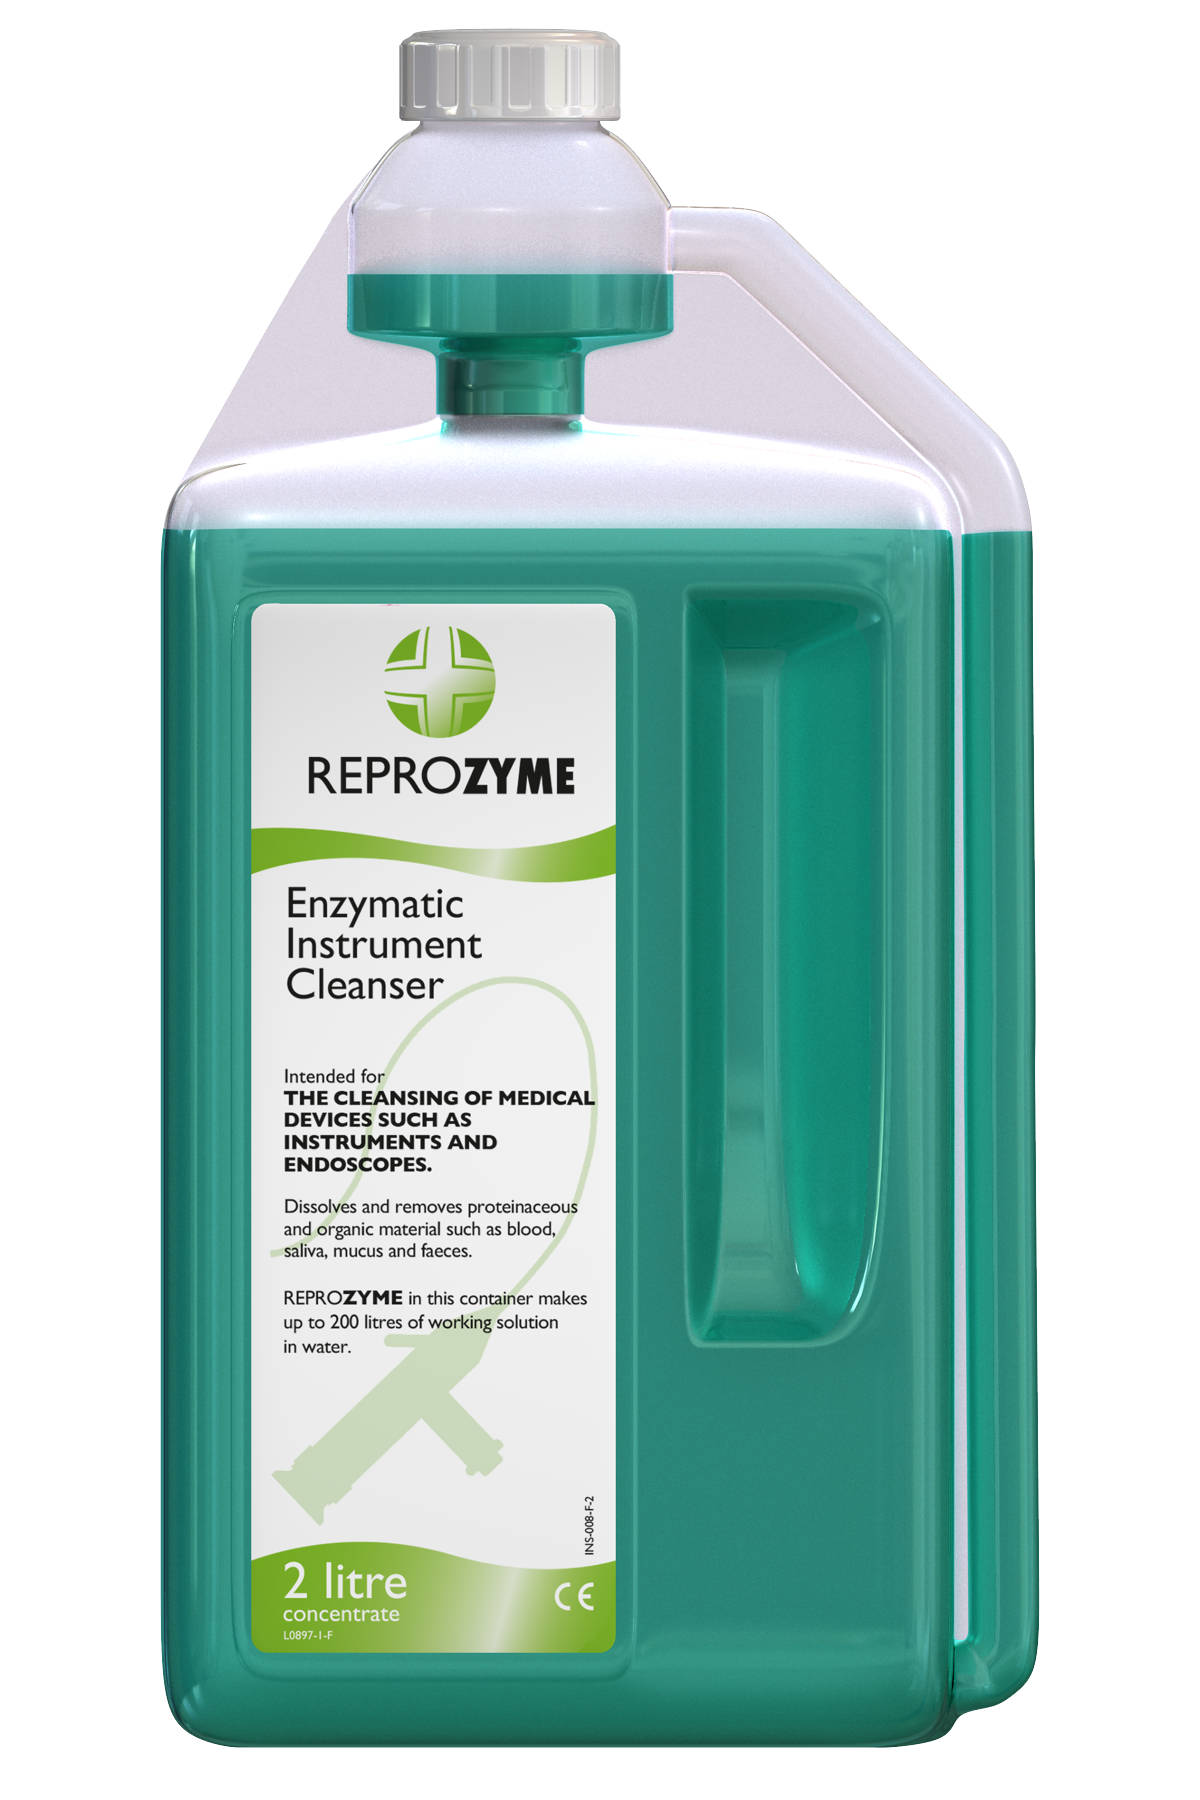 REPROZYME CE Enzymatic Instrument Cleaner